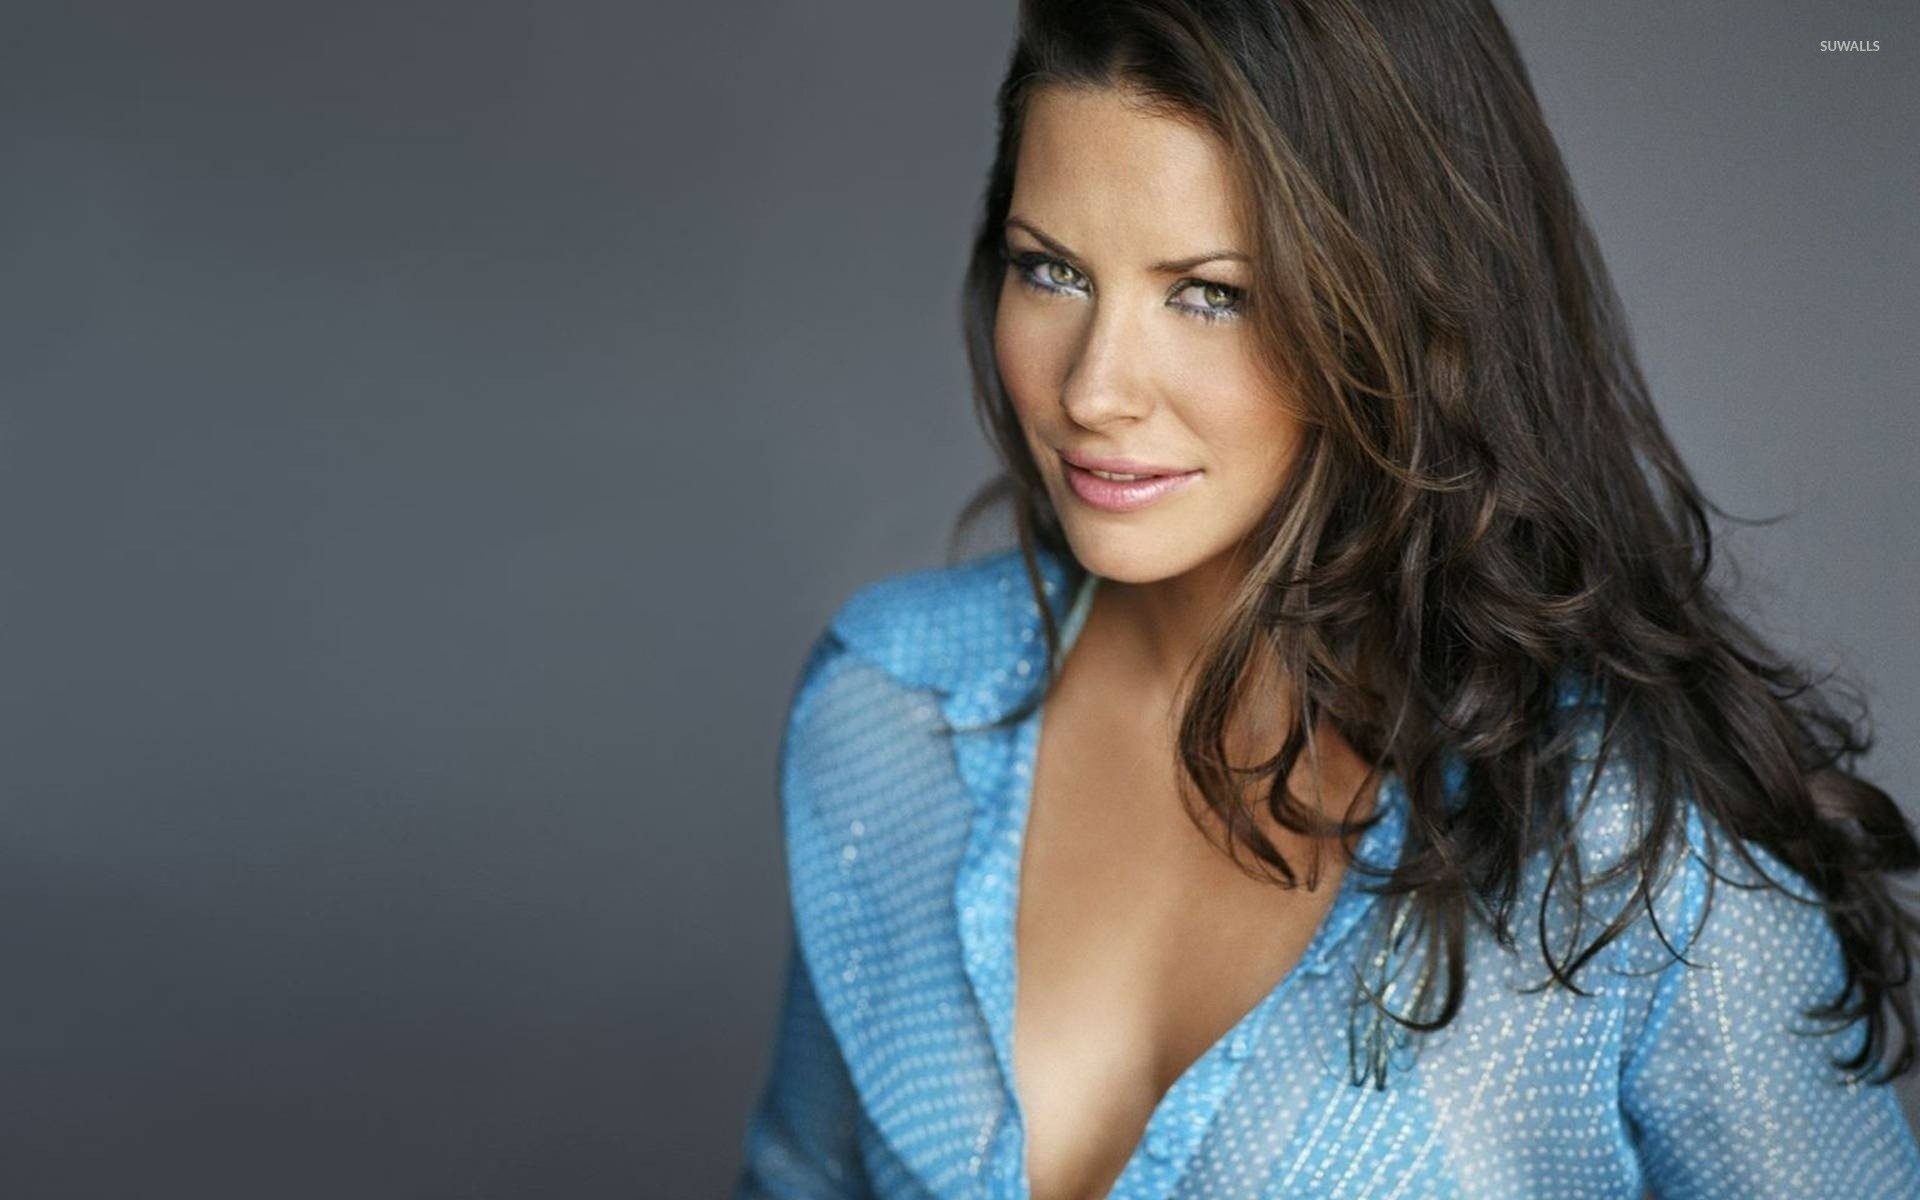 1920x1200 - Evangeline Lilly Wallpapers 4